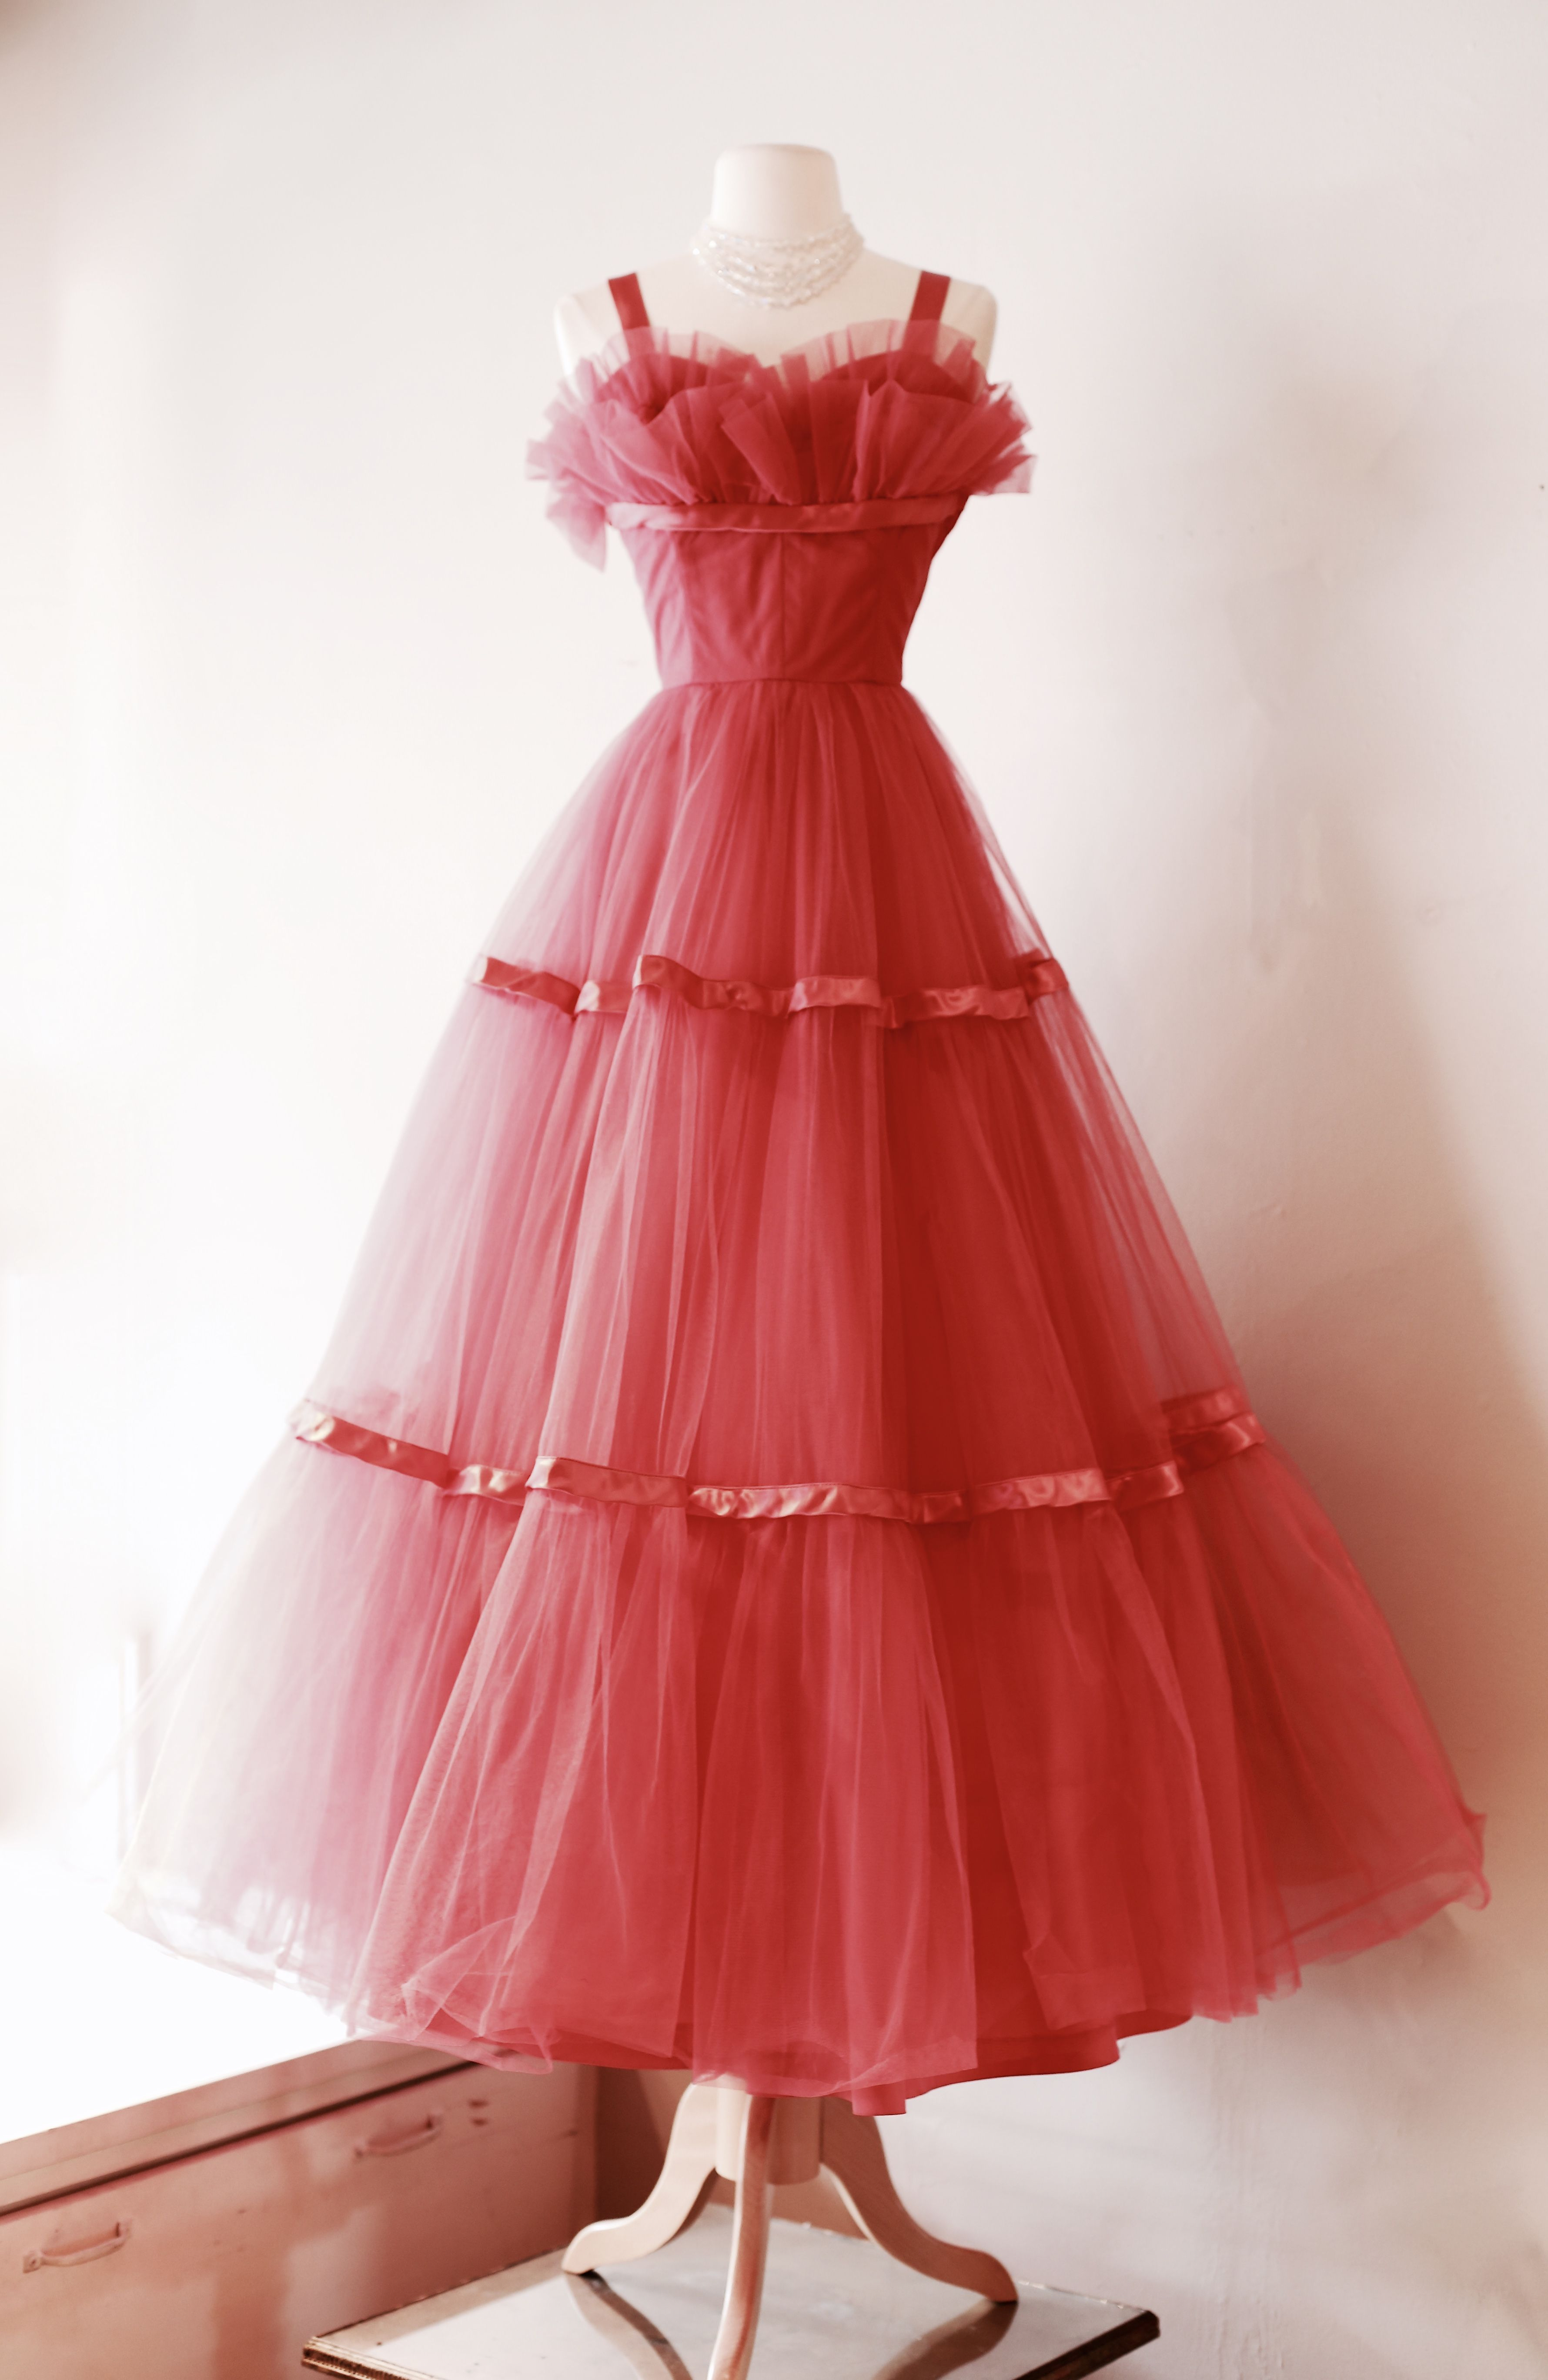 1950s Emma Domb party dress, sold at Xtabay. | Cute | Pinterest ...